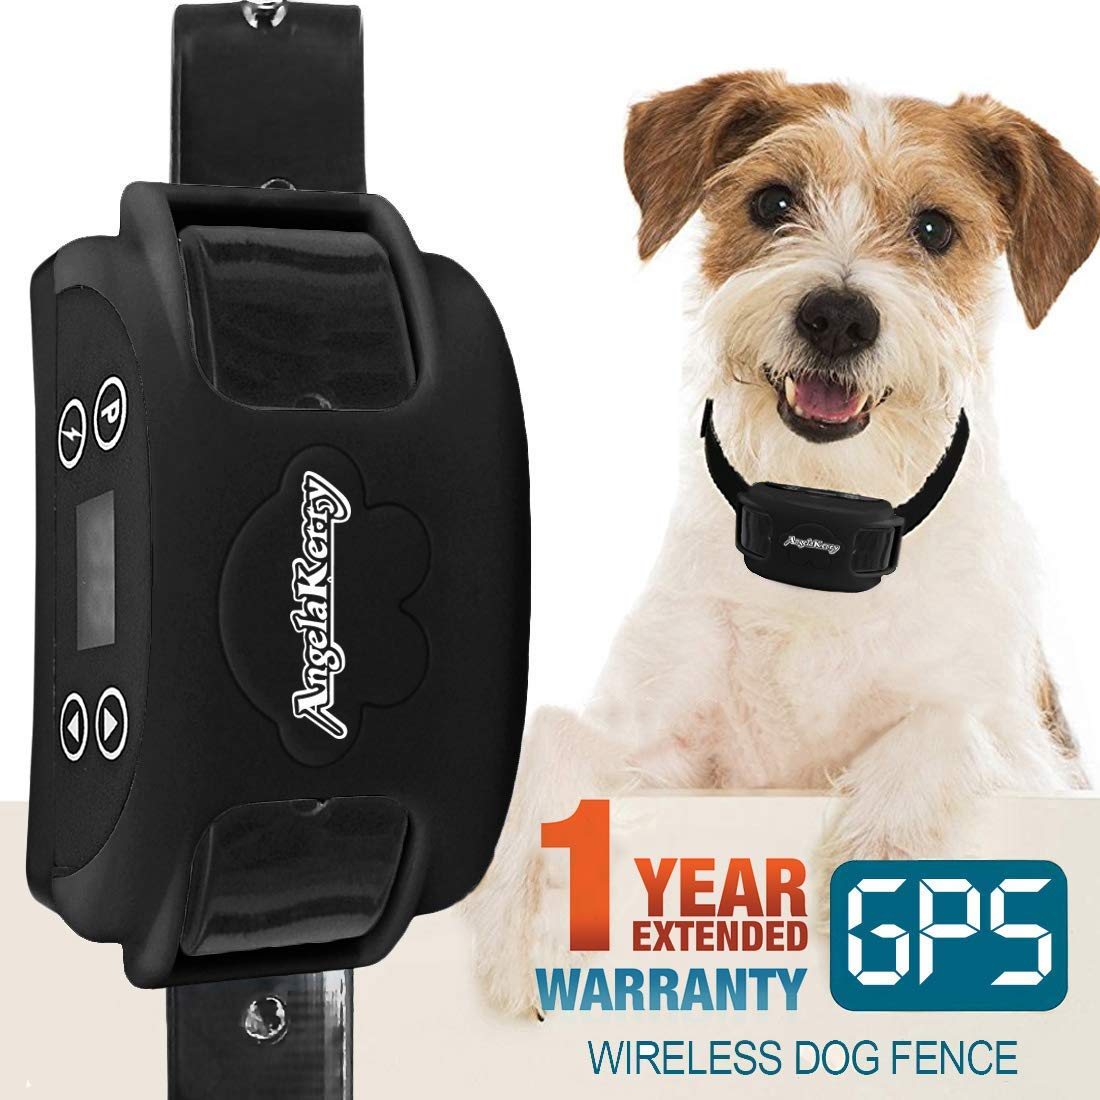 AngelaKerry Wireless Dog Fence System with GPS, Outdoor Pet Containment System Rechargeable Waterproof Collar 850YD Remote for 15lbs-120lbs Dogs (1pc GPS Receiver by 1 Dog, Black) by AngelaKerry